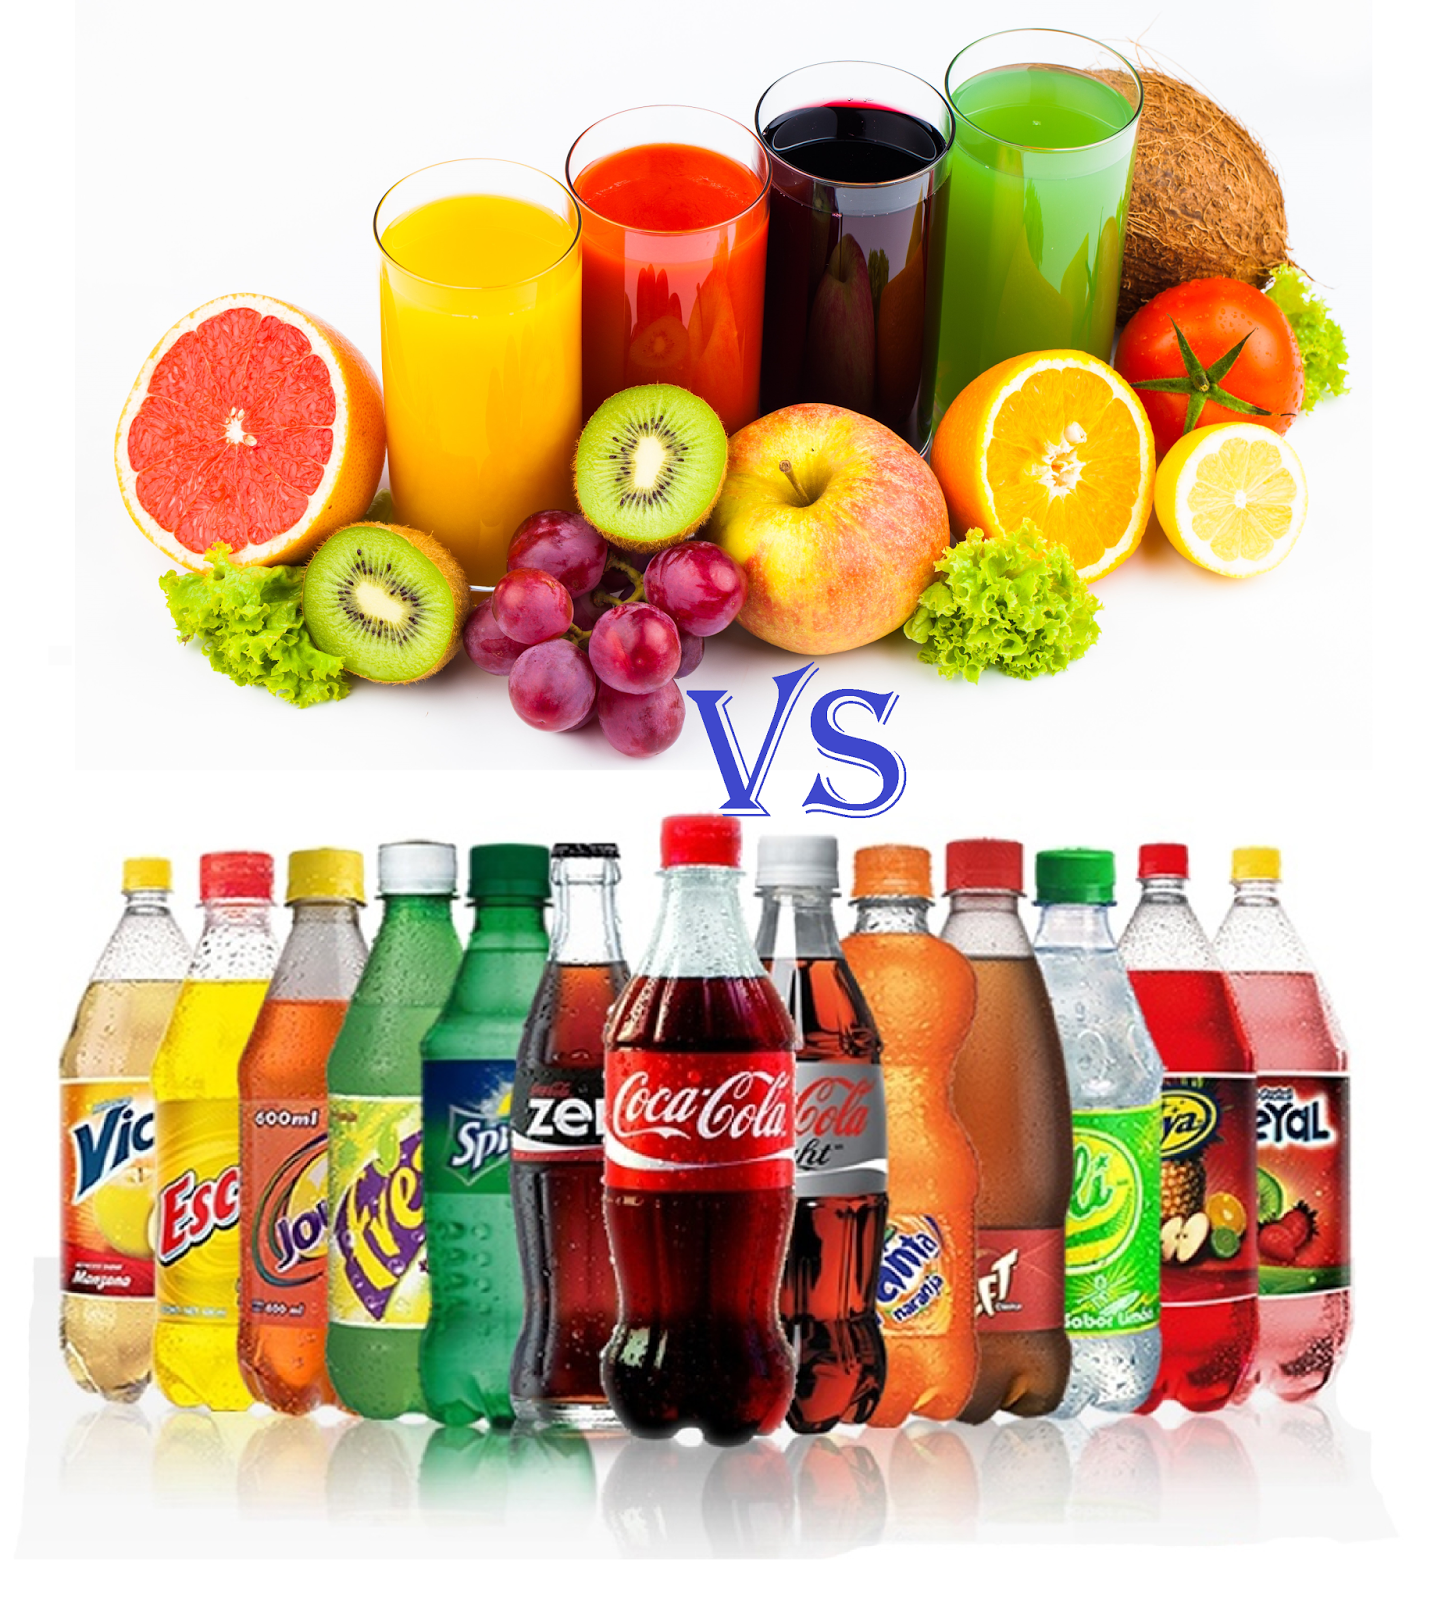 Juices & Soft Drinks